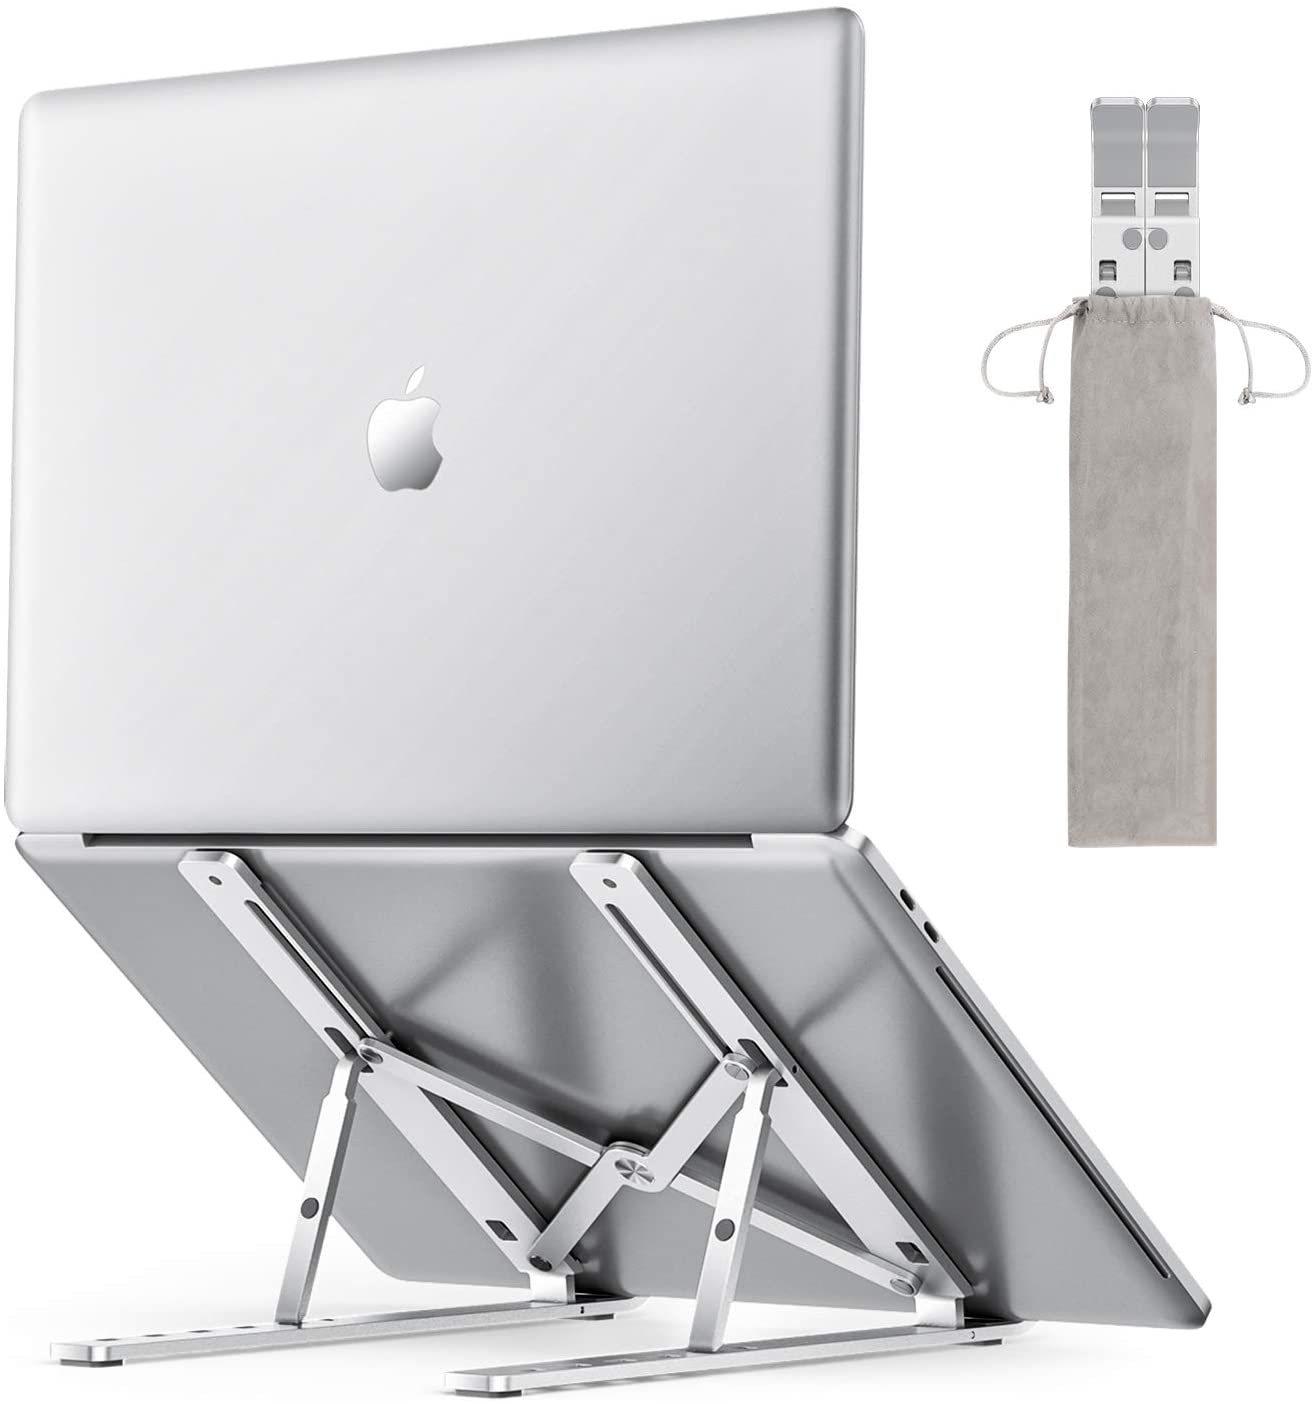 ALO X Laptop Stand Tech Accessories Wundercart